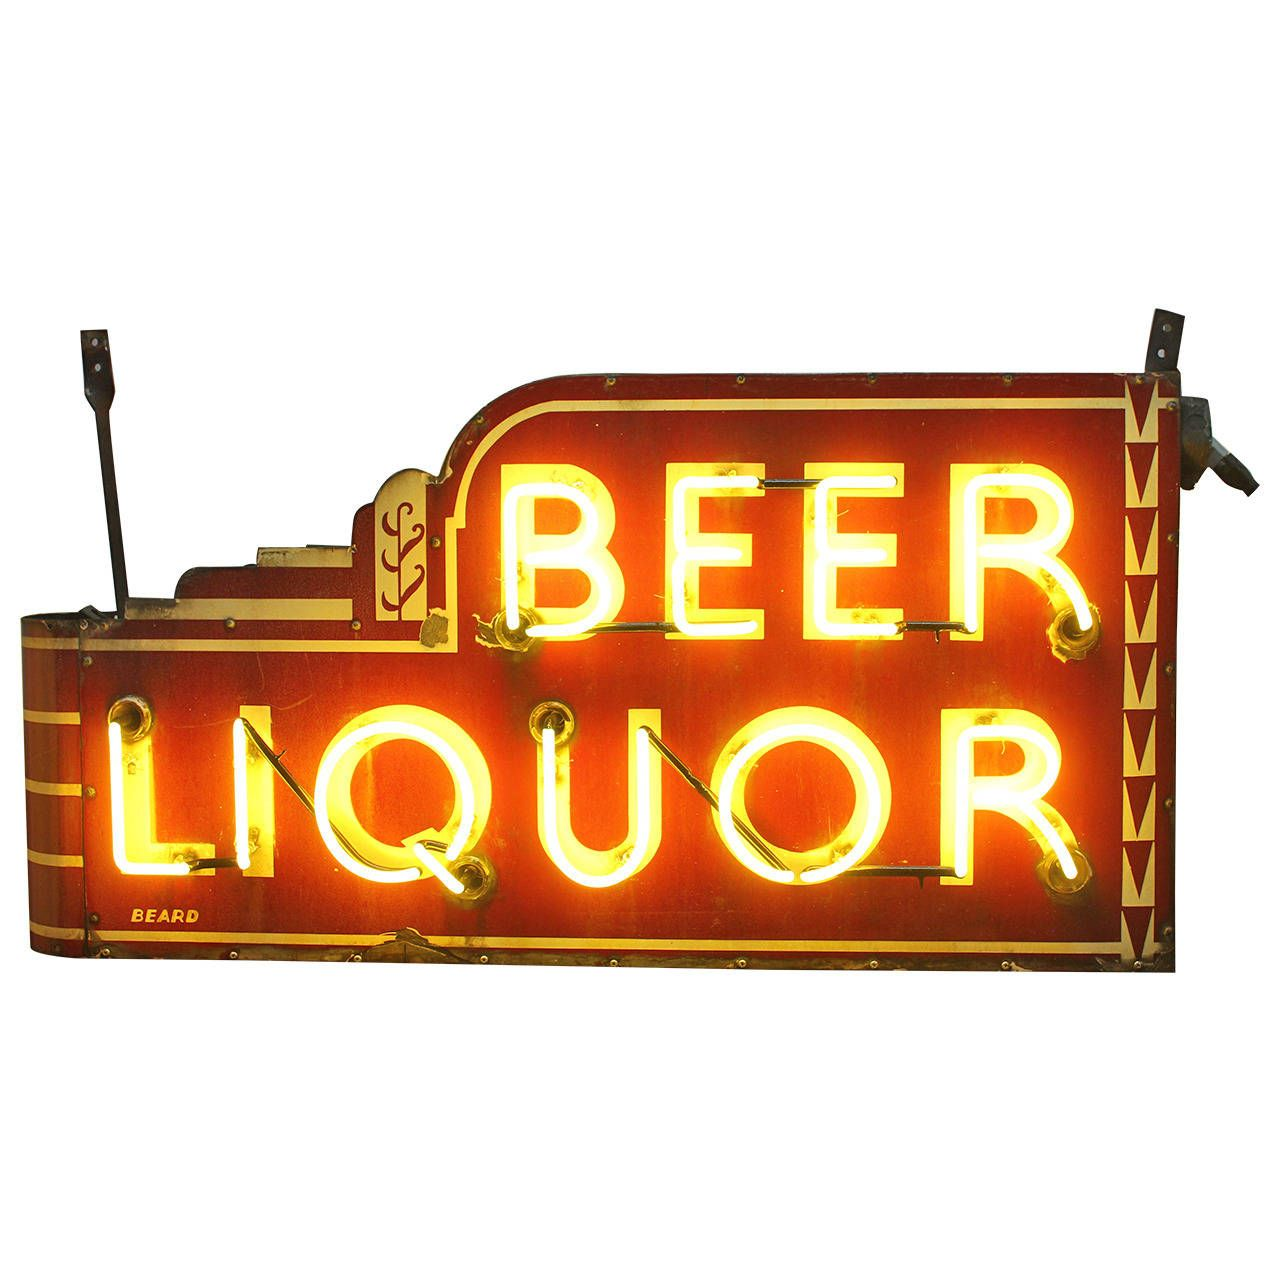 neon beer sign liquor deco signs rare double sided antique advertising yellow signage 1stdibs motel diving eat visit electric furniture